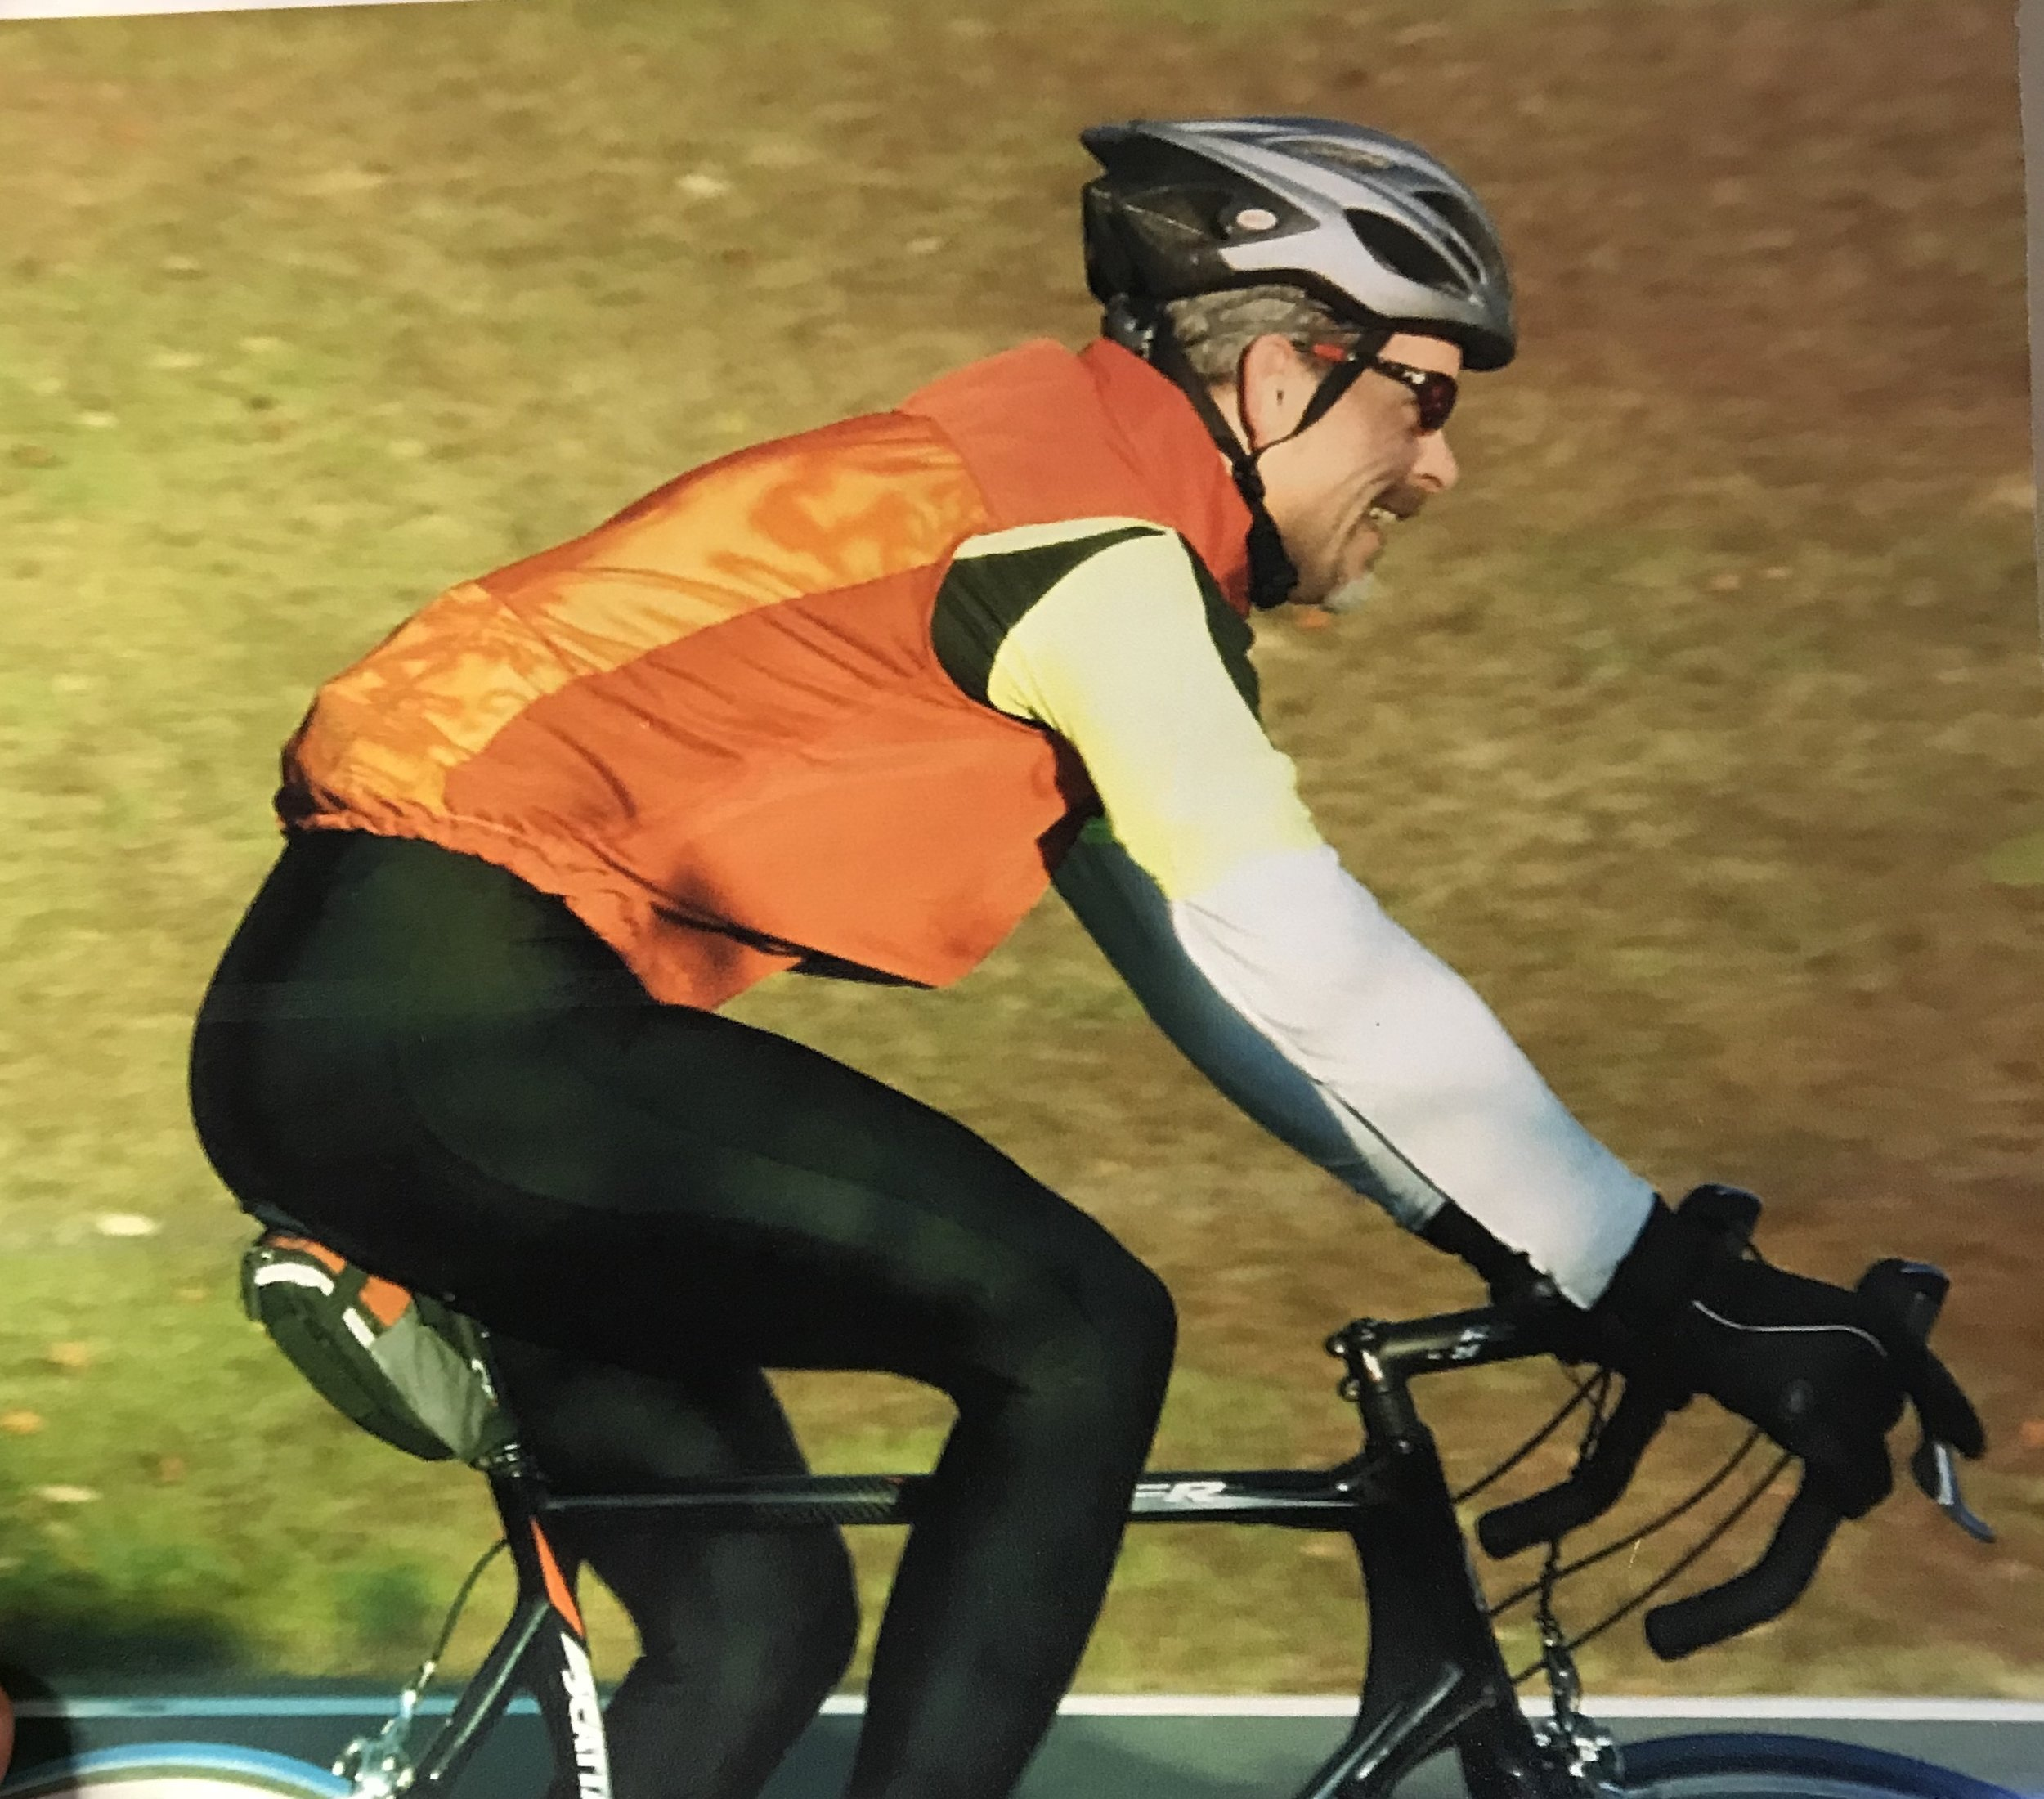 Scott, another one of my yoga students and avid cyclist